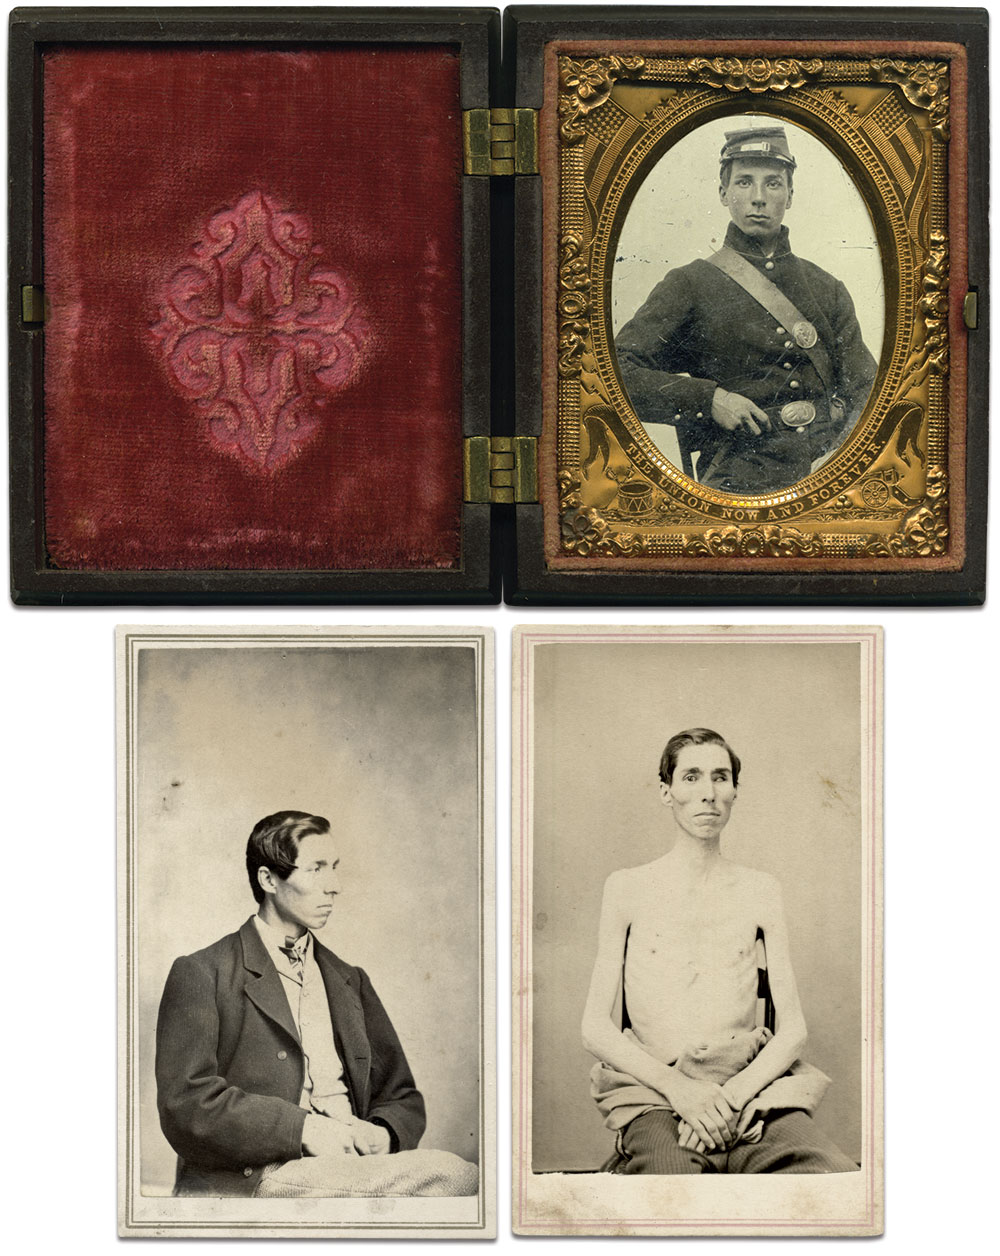 Ninth-plate tintype, top, by an anonymous photographer;Carte de visite, bottom left, by Watson & Currier of Montpelier, Vt;Carte de visite by R.M. McIntosh of Northfield, Conn.